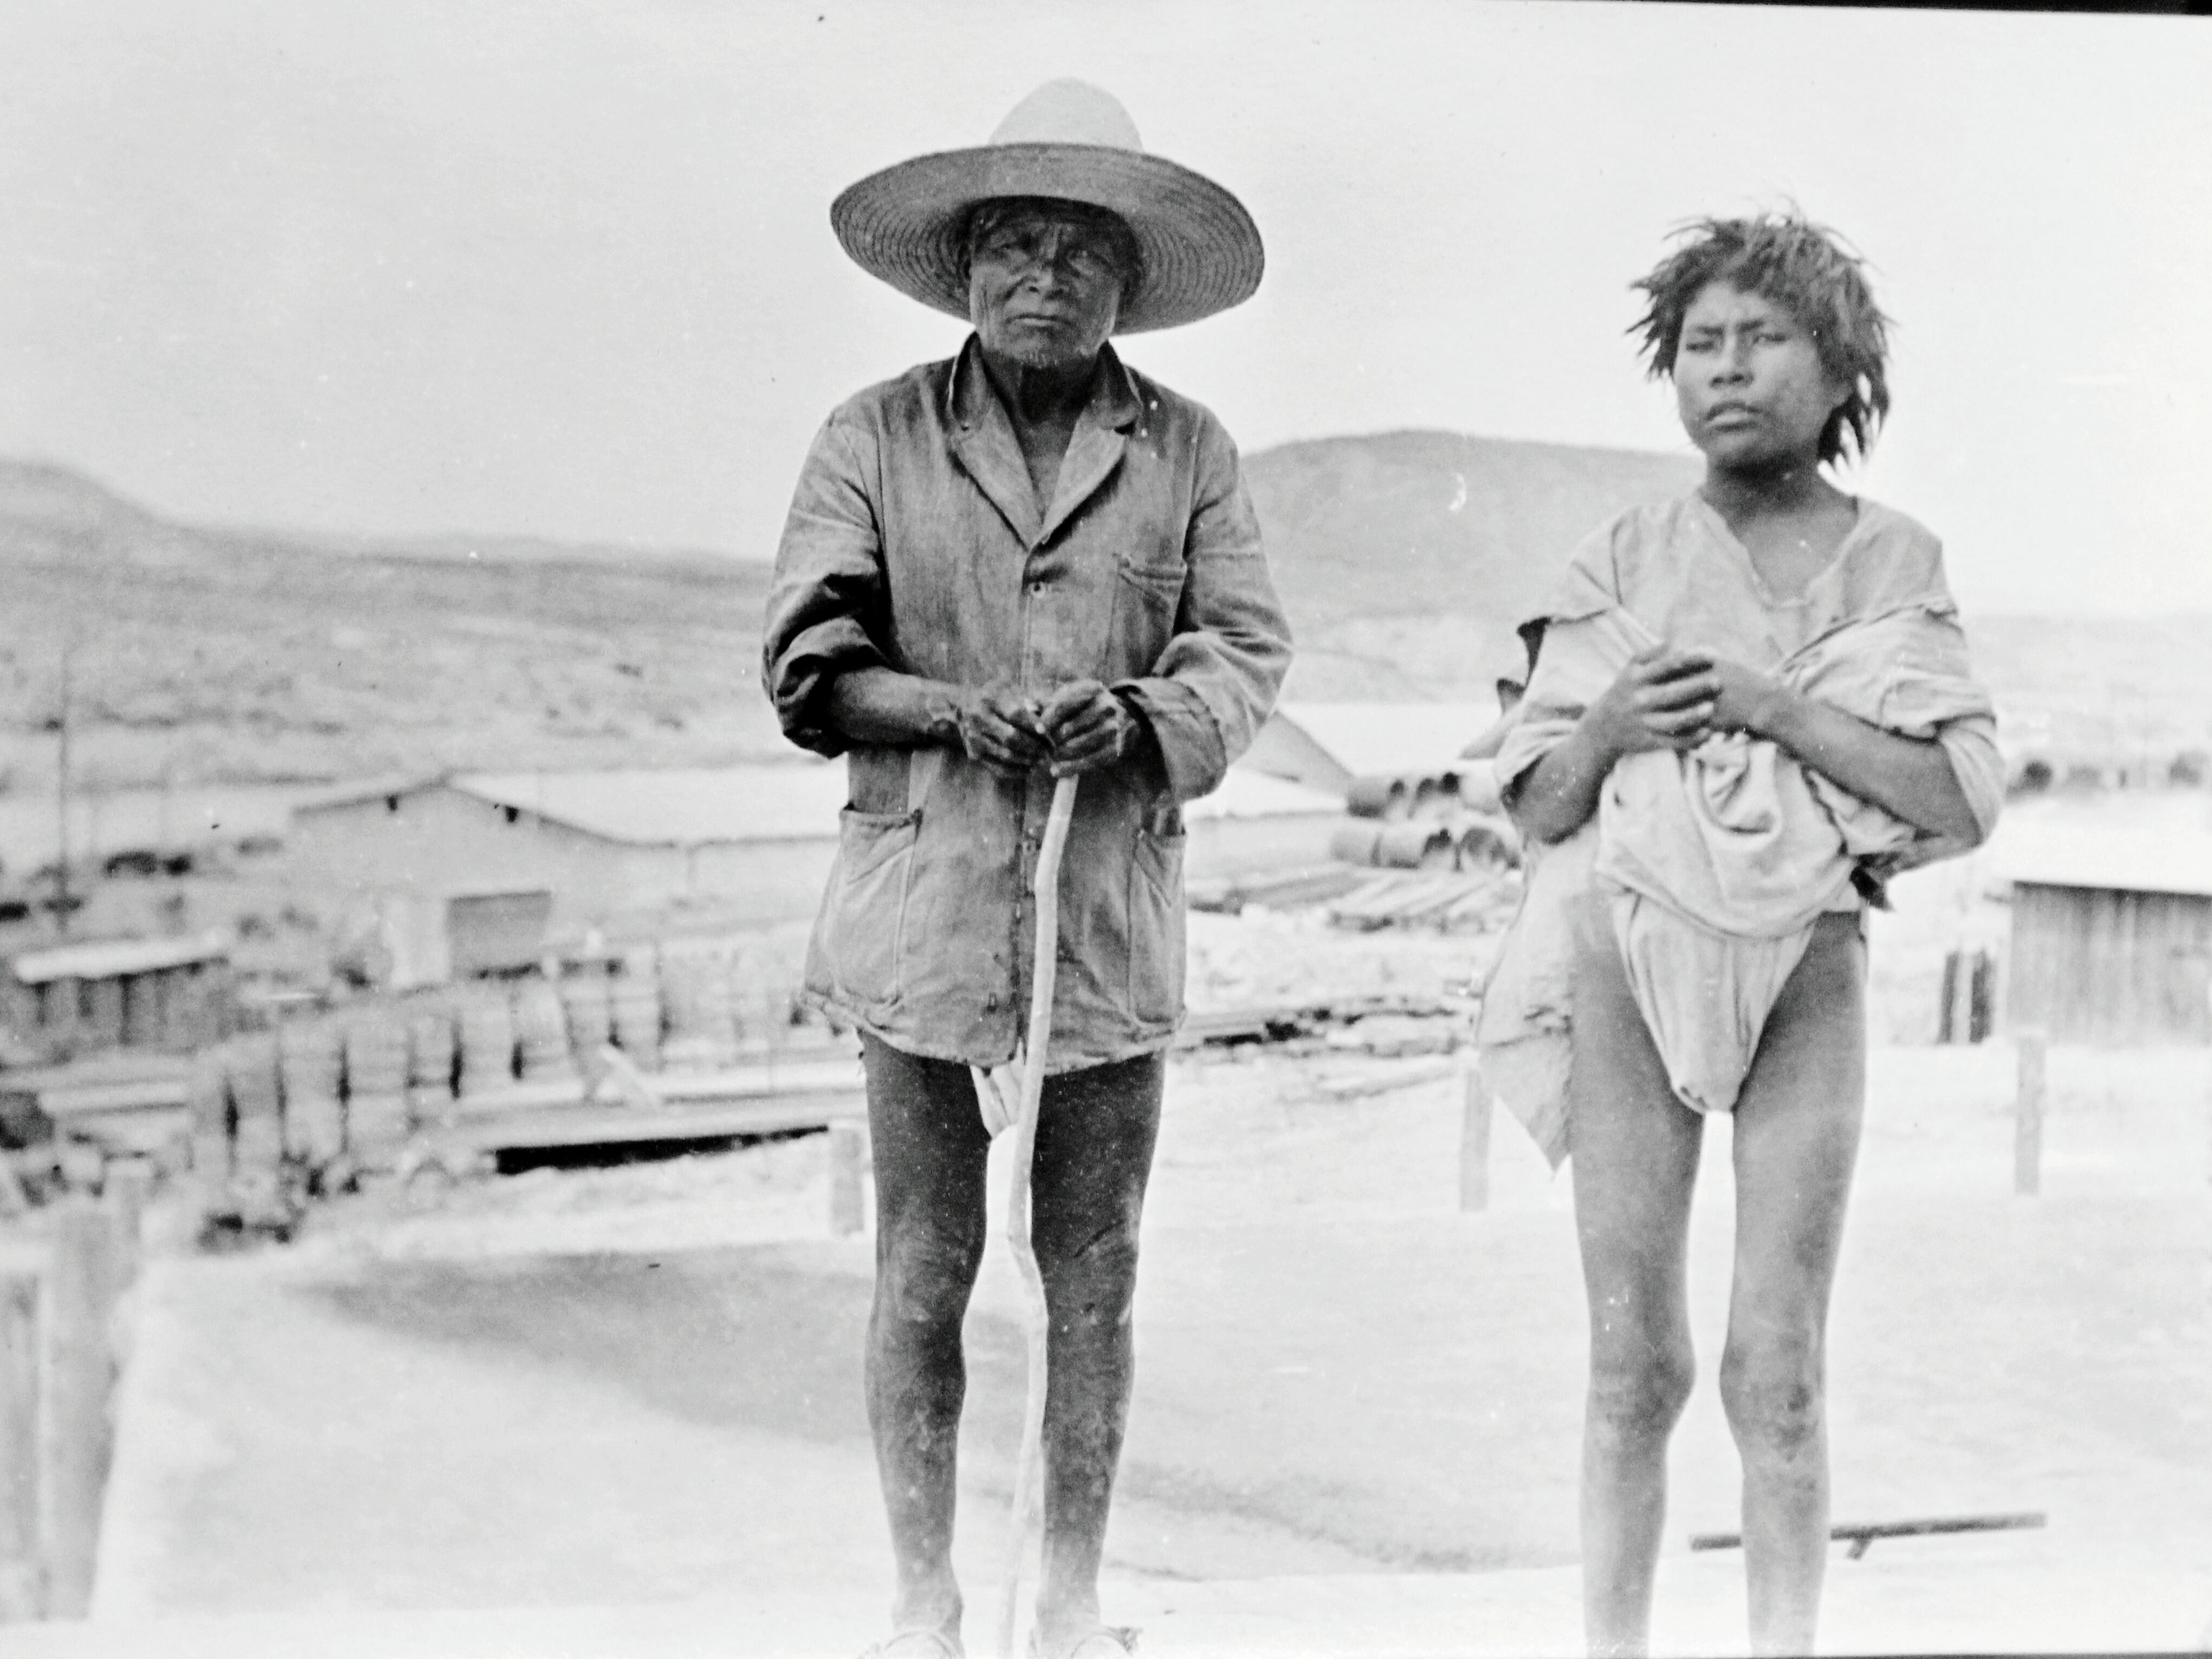 Museum Antique Photos Mexican Natives Natives Century Xx History Past